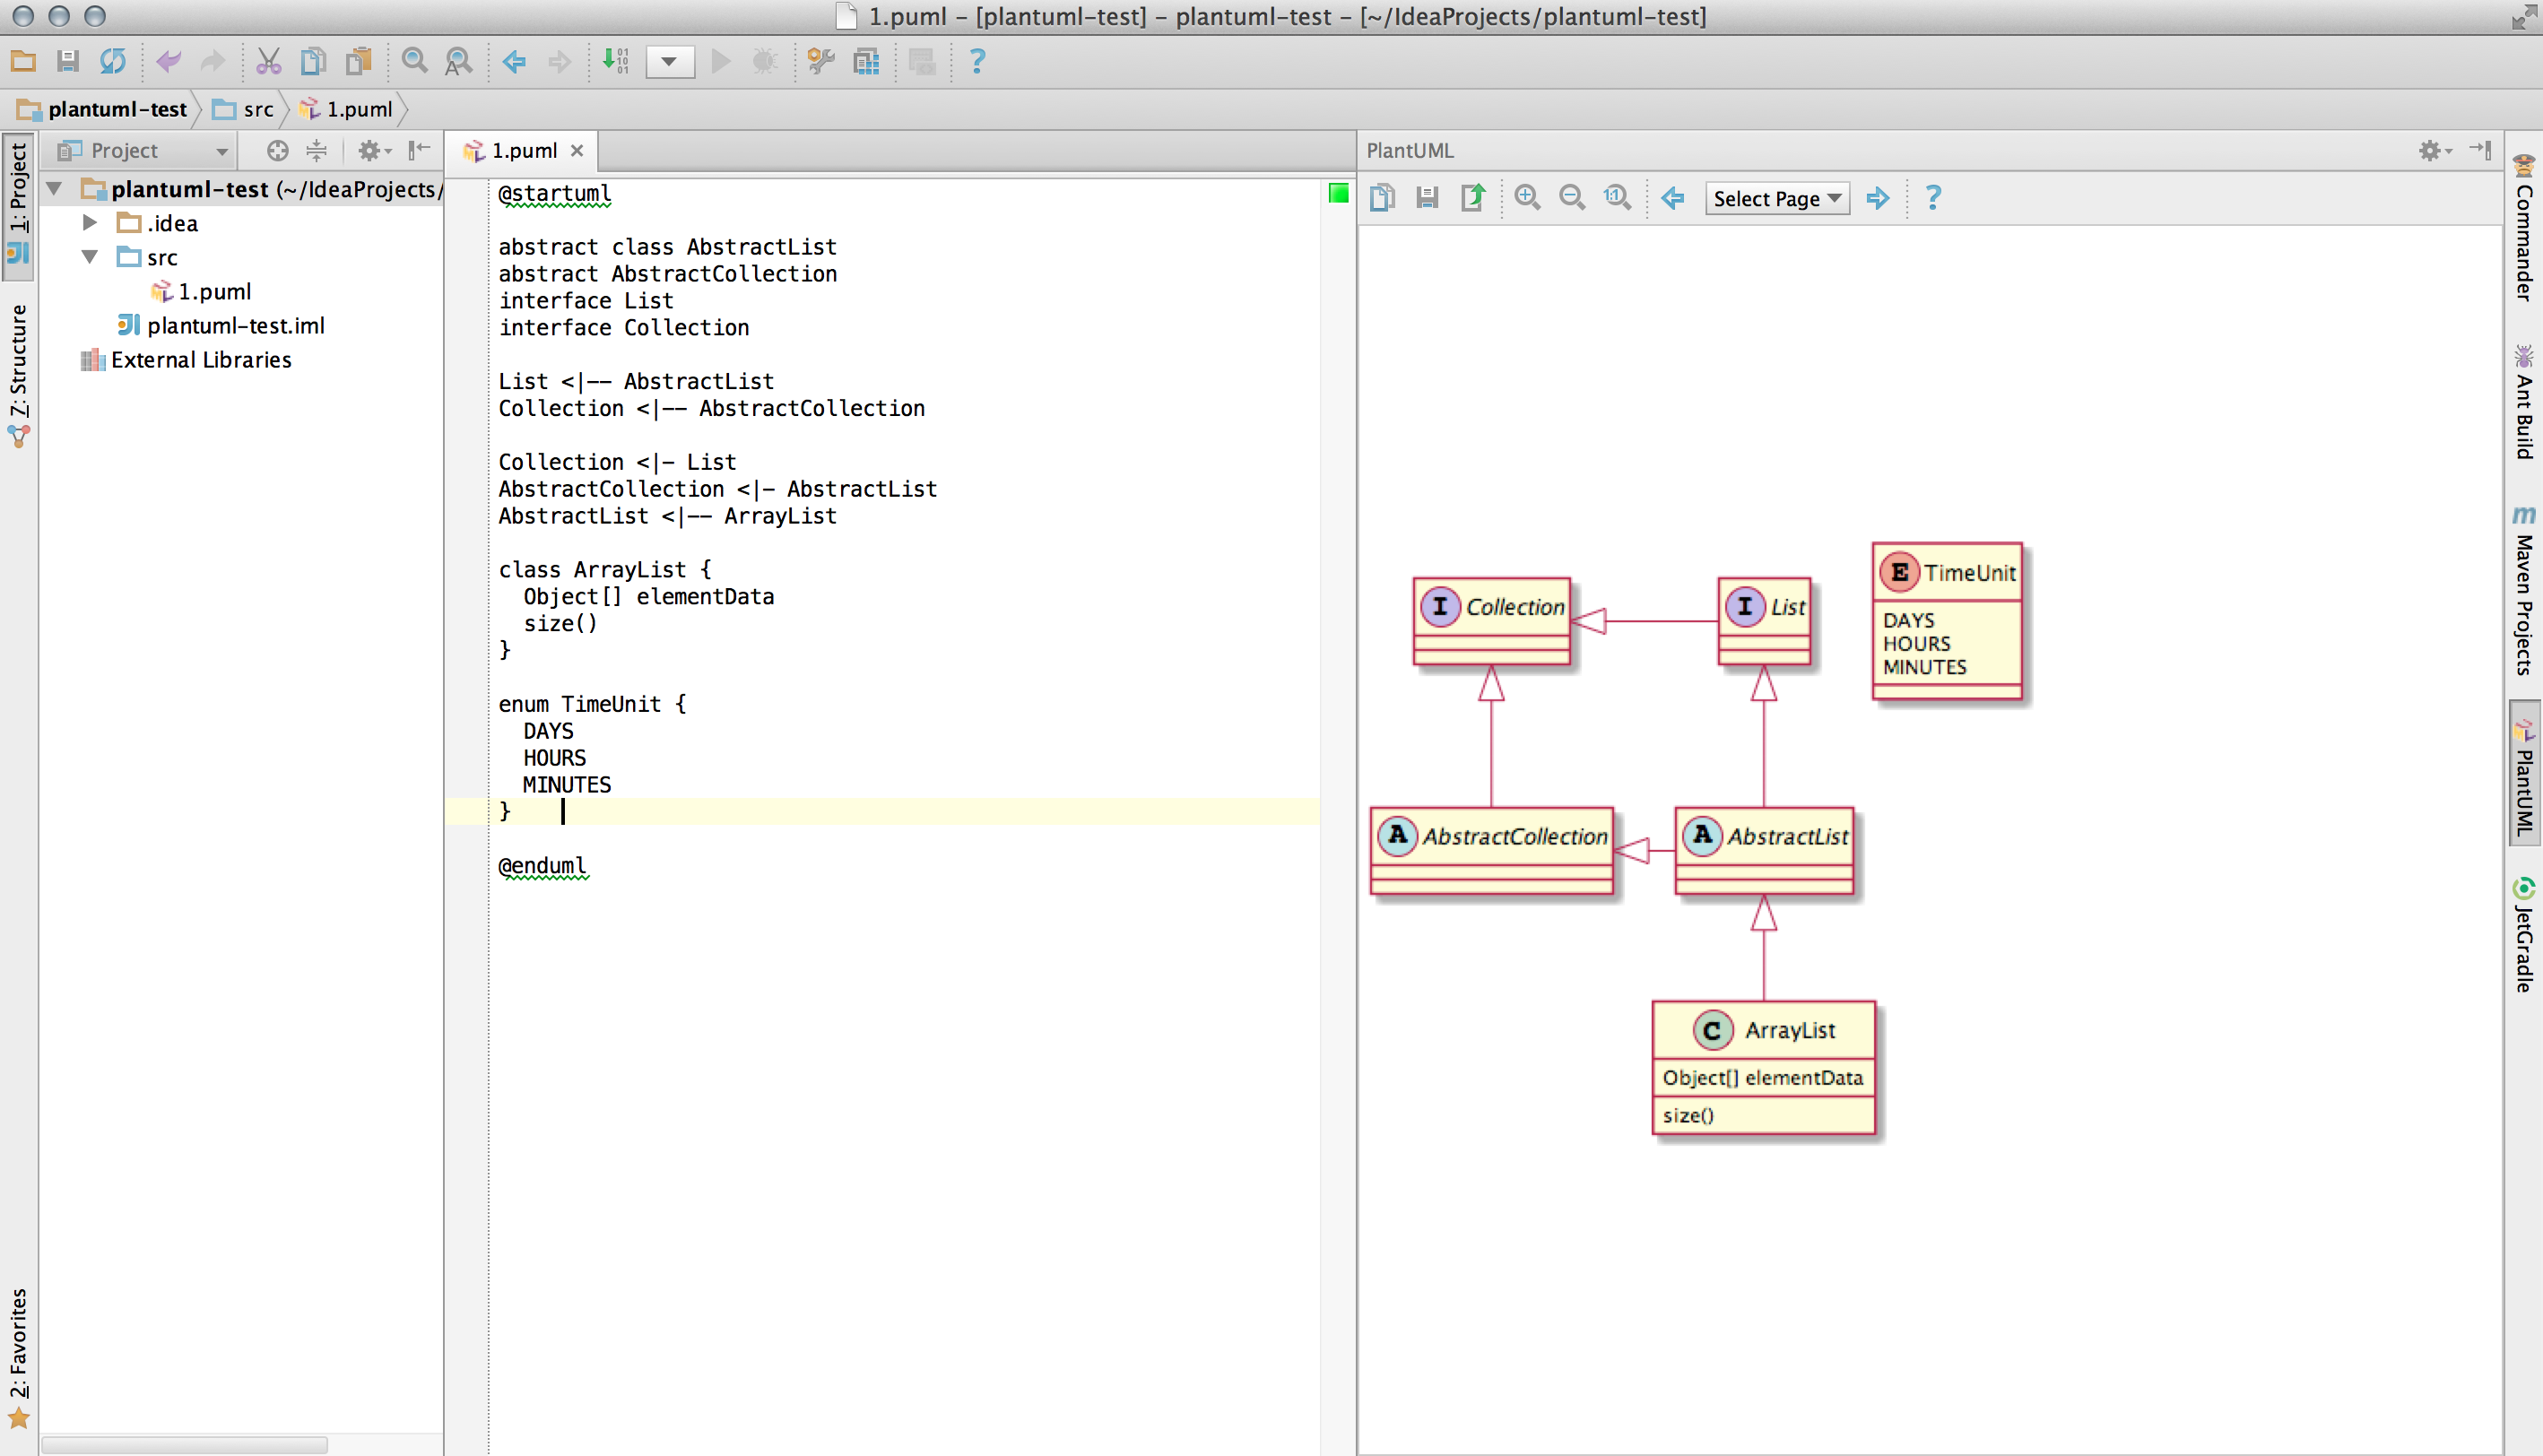 Plantuml Integration Plugins Jetbrains Make A Block Diagram In Word Screenshot 14265